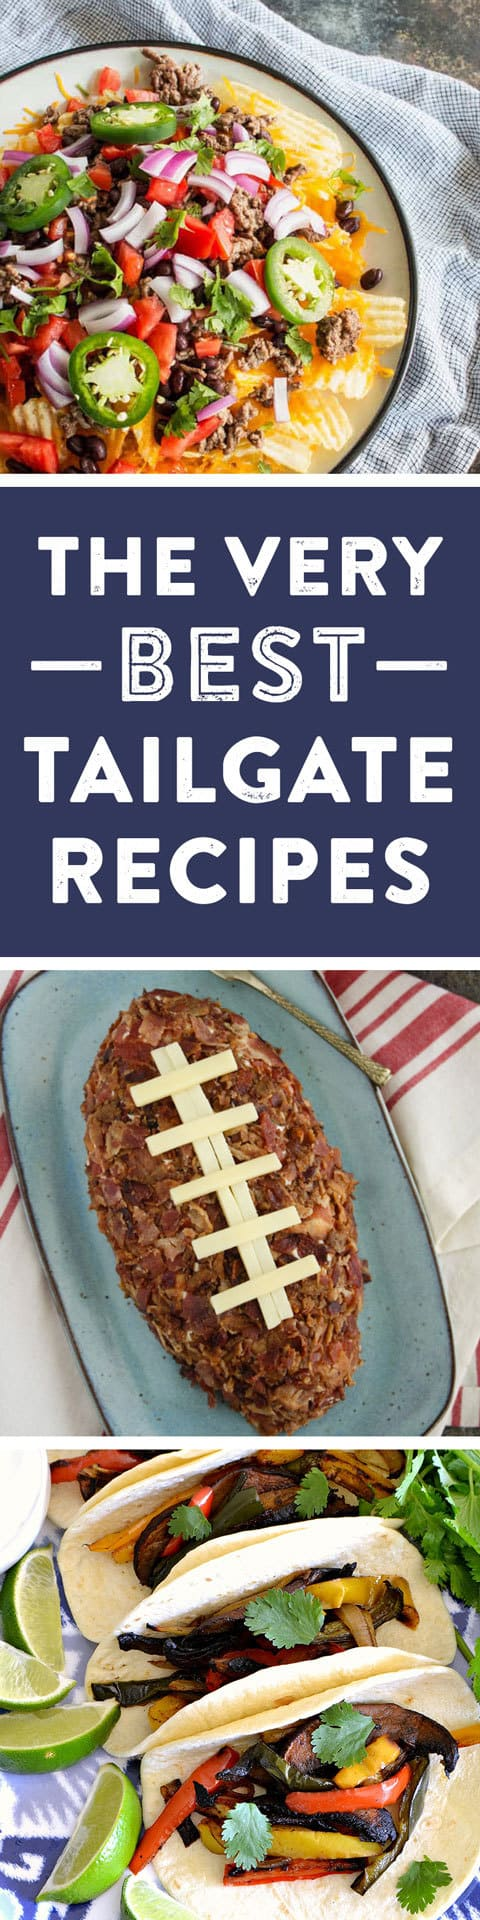 Who's ready for some tailgating? These 19 tailgating recipes are sure to get your football party started.